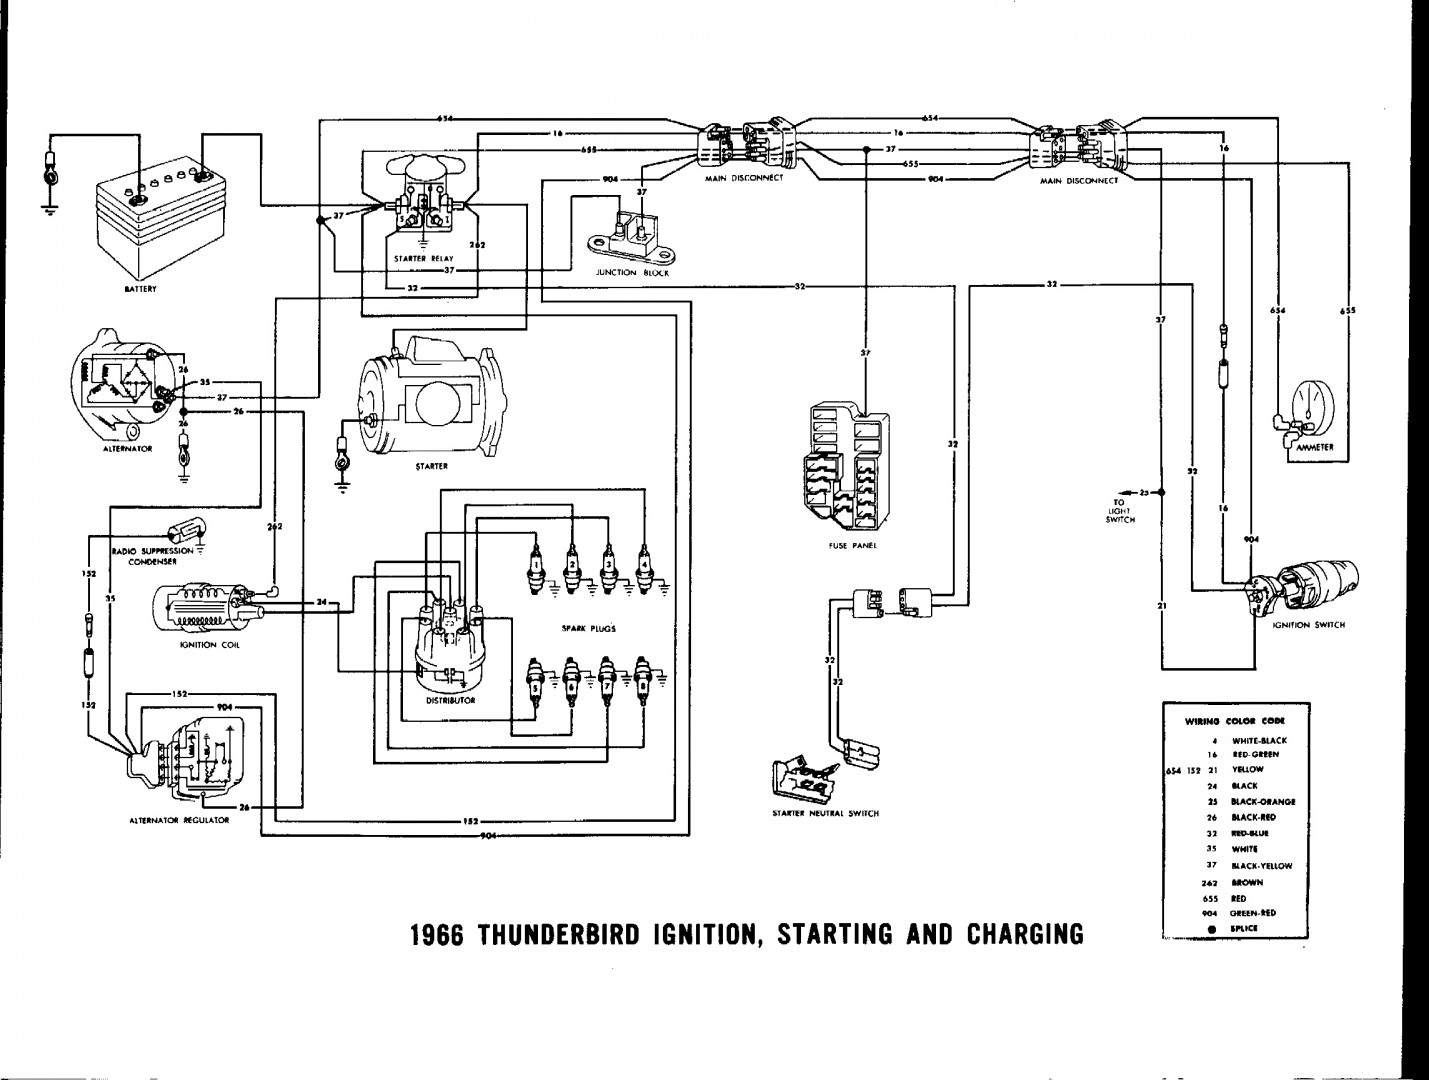 1964 Ford Thunderbird Wiring Diagram | carnival-anywhere Wiring Diagram  Options - carnival-anywhere.autoveicoli-elettrici.it | Ford Thunderbird Wiring Diagrams |  | Autoveicoli Elettrici